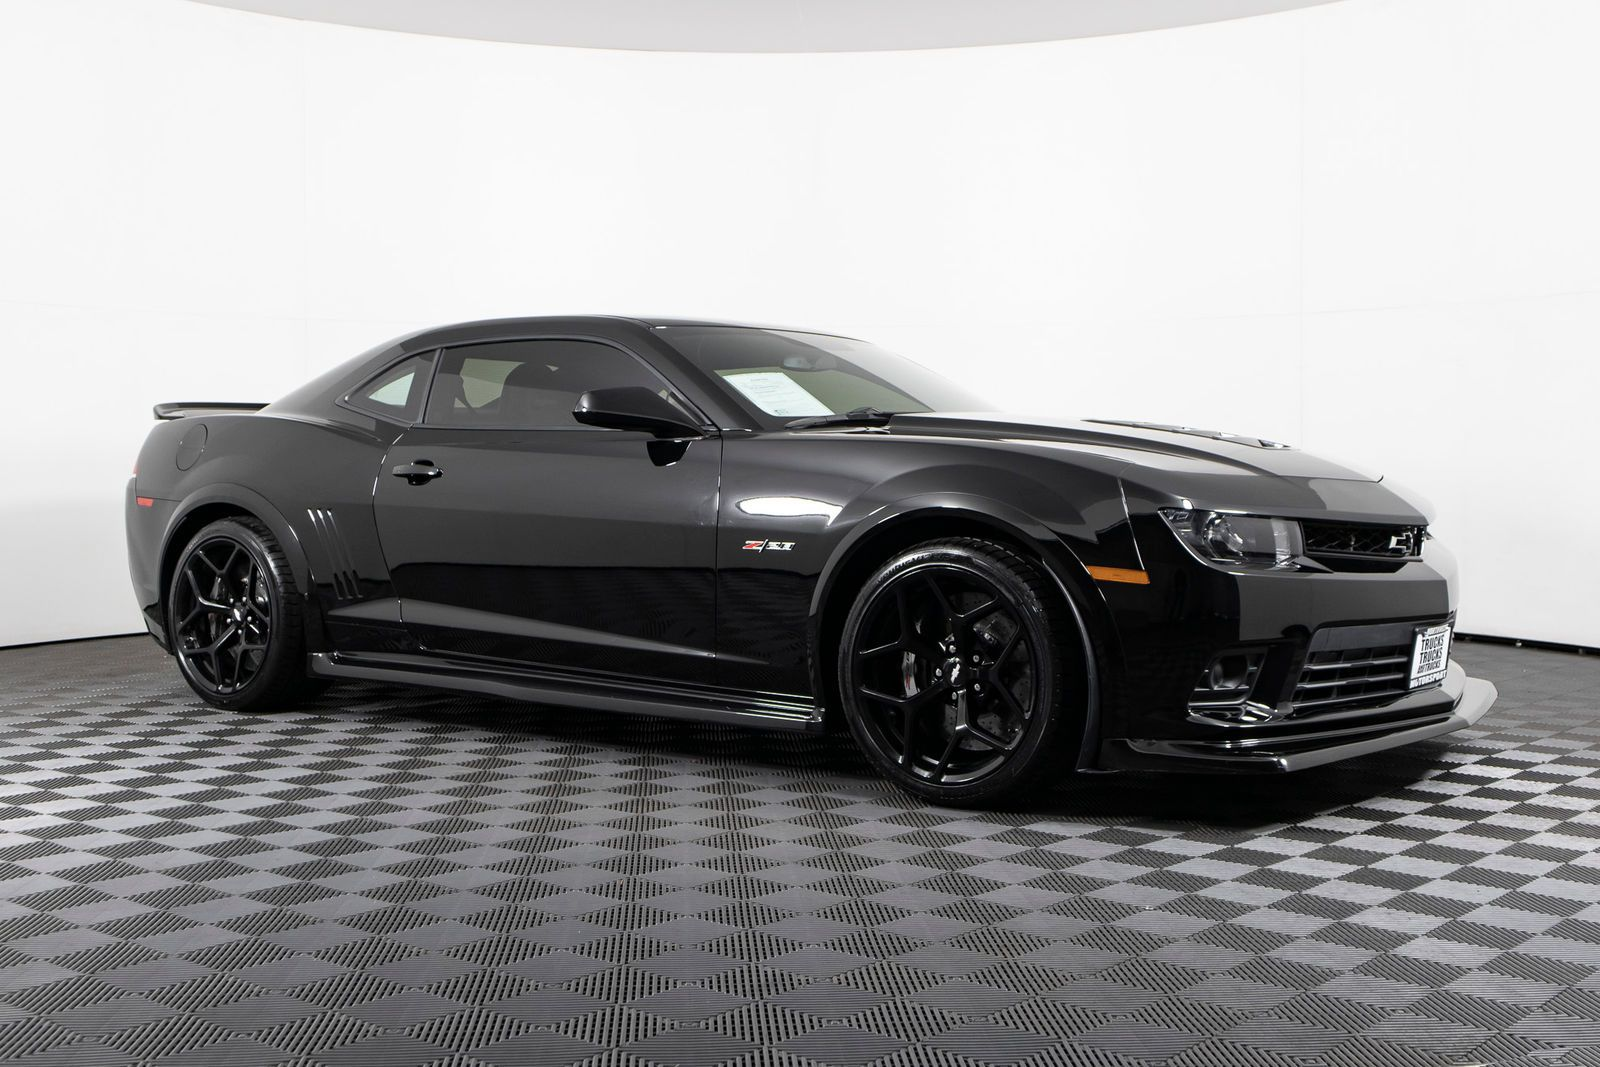 Used 2015 Chevrolet Camaro Z28 Rwd Coupe For Sale Northwest Motorsport Chevrolet Camaro Camaro Chevrolet